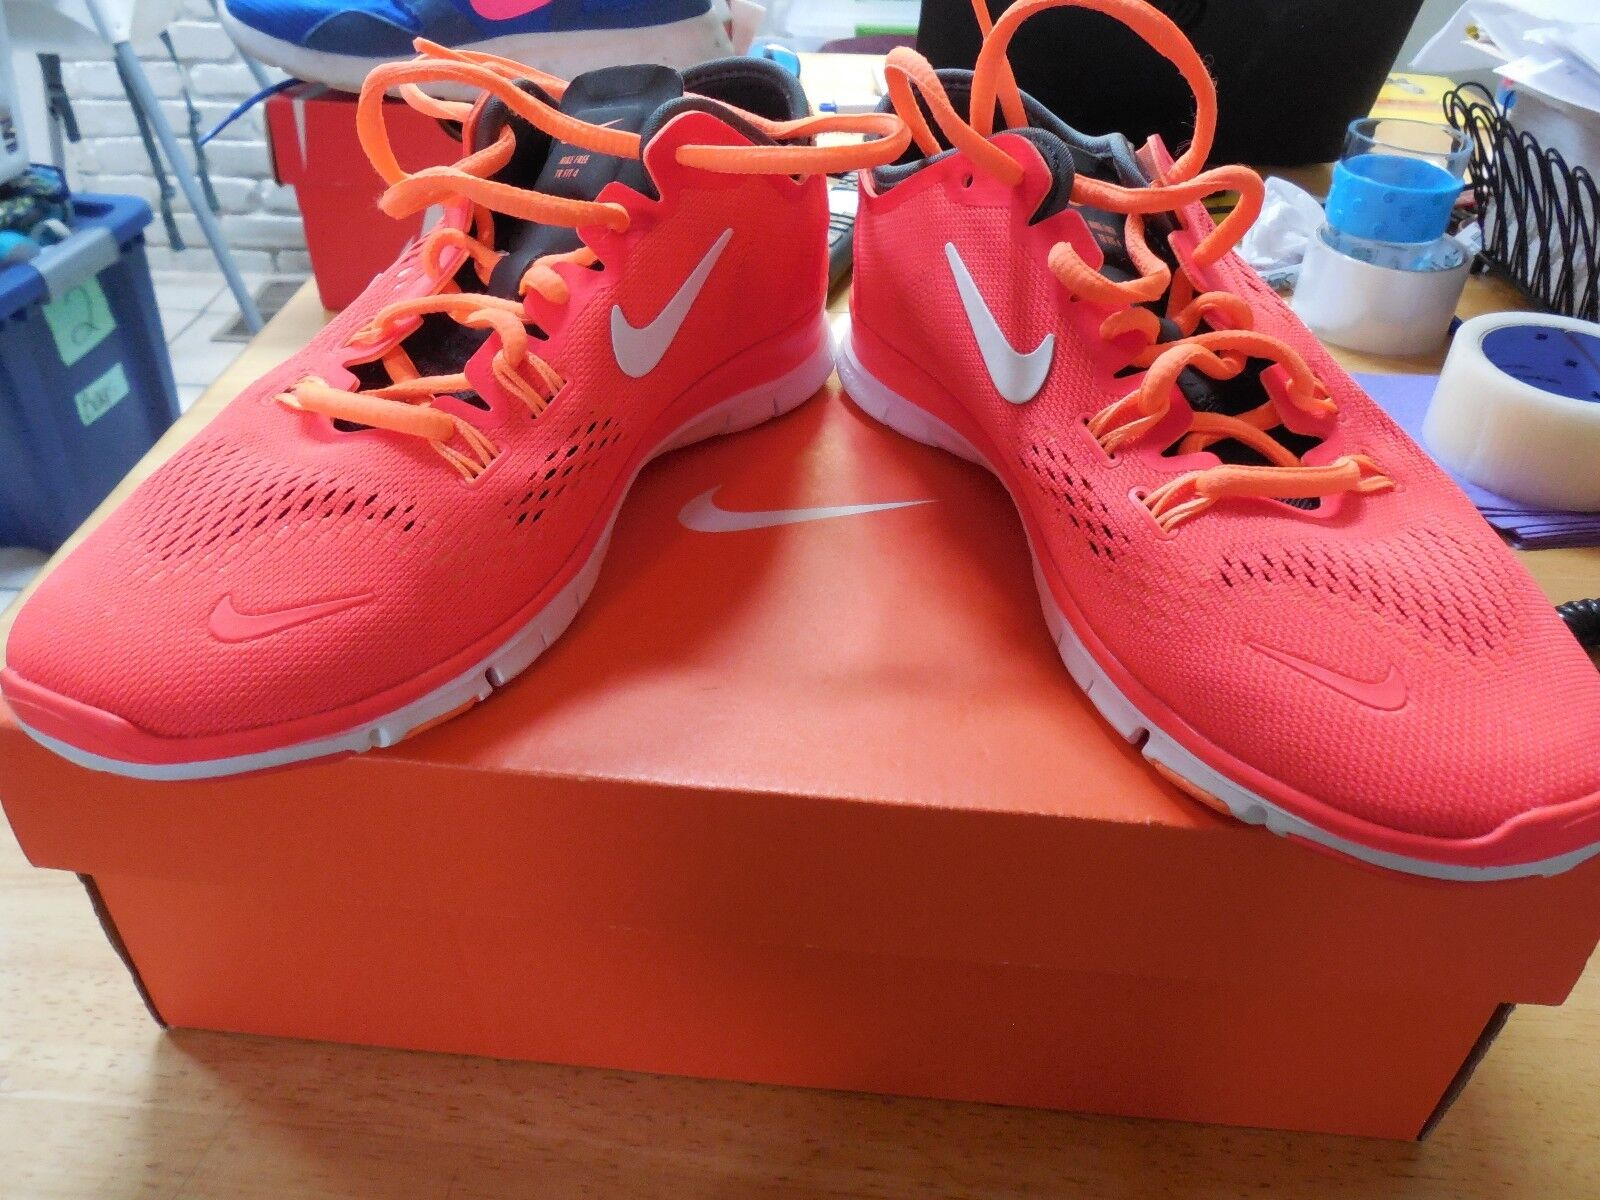 Nike Free 5.0 629496-618 TR Fit 4 Crimson Trainers Running Shoes Women's Sz 7.5 Cheap women's shoes women's shoes